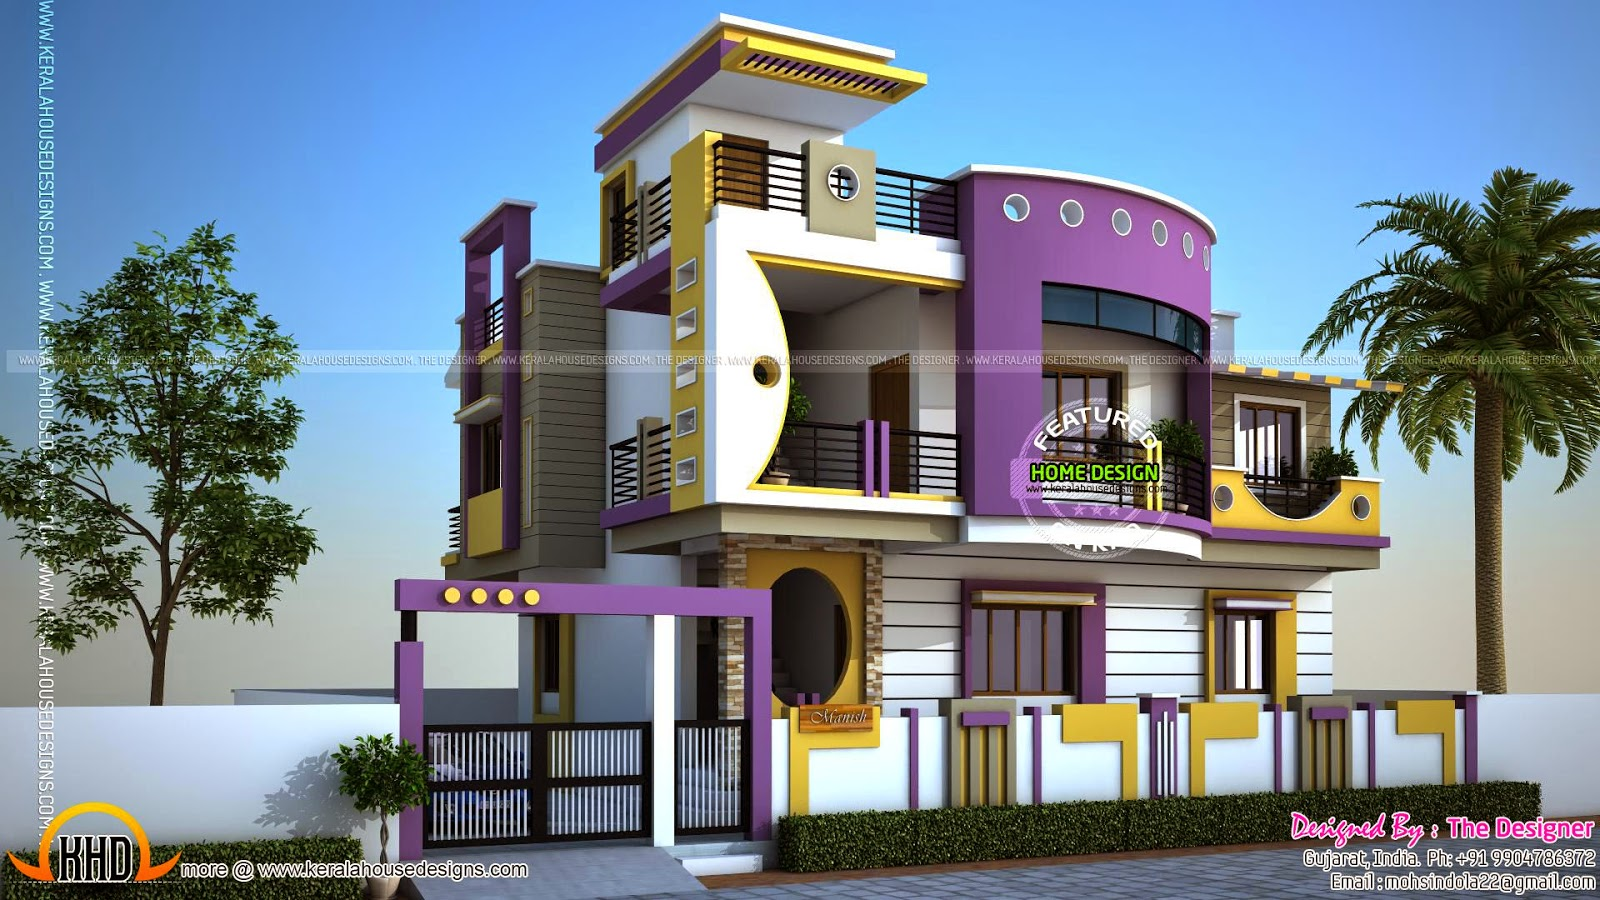 House exterior designs in contemporary style kerala home for Building front design